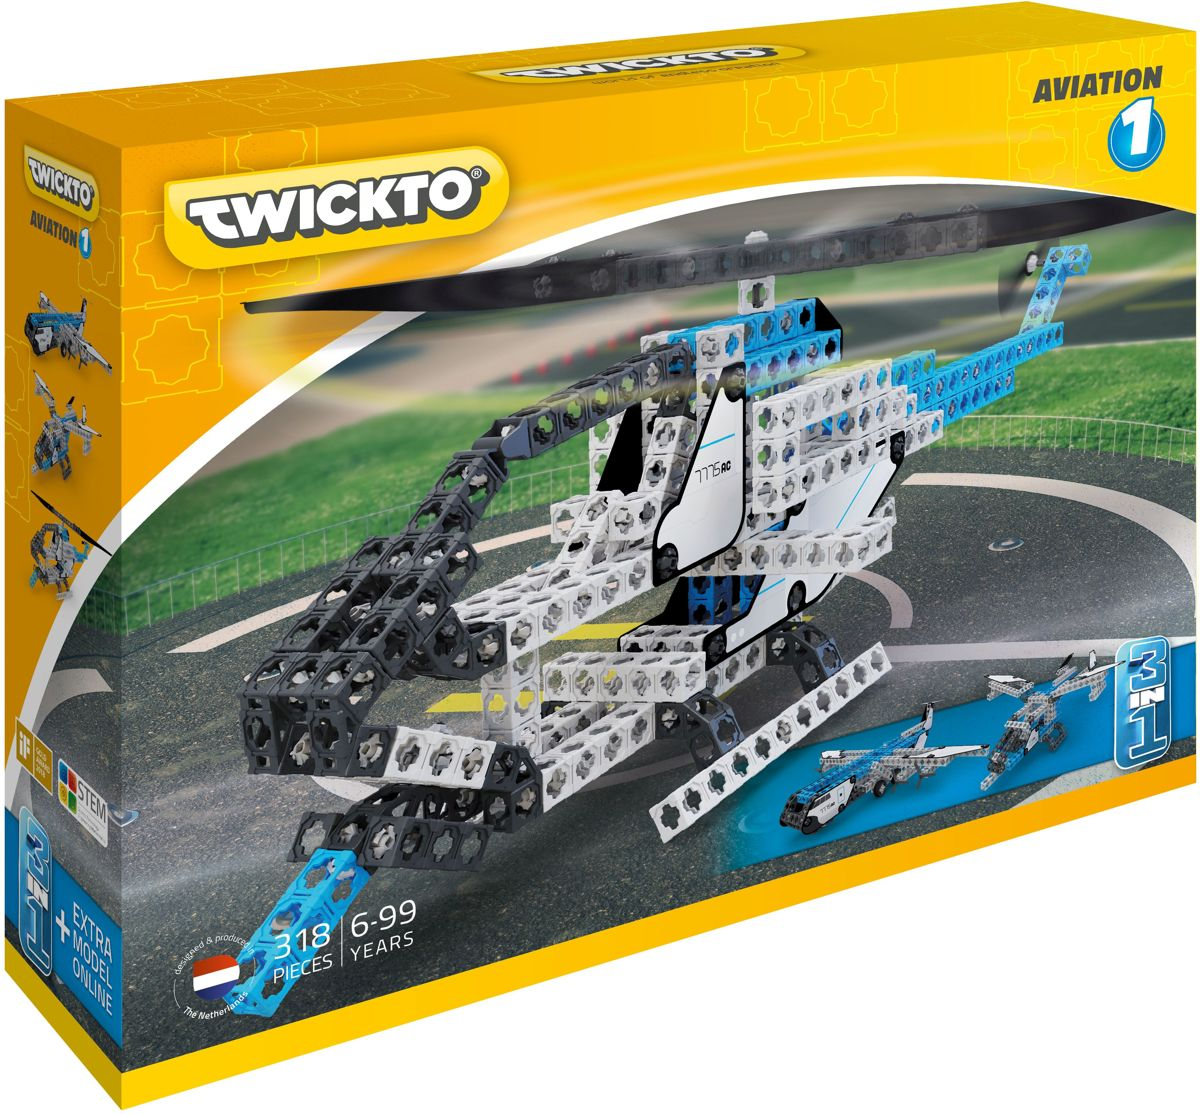 Twickto Aviation 1 318-delig